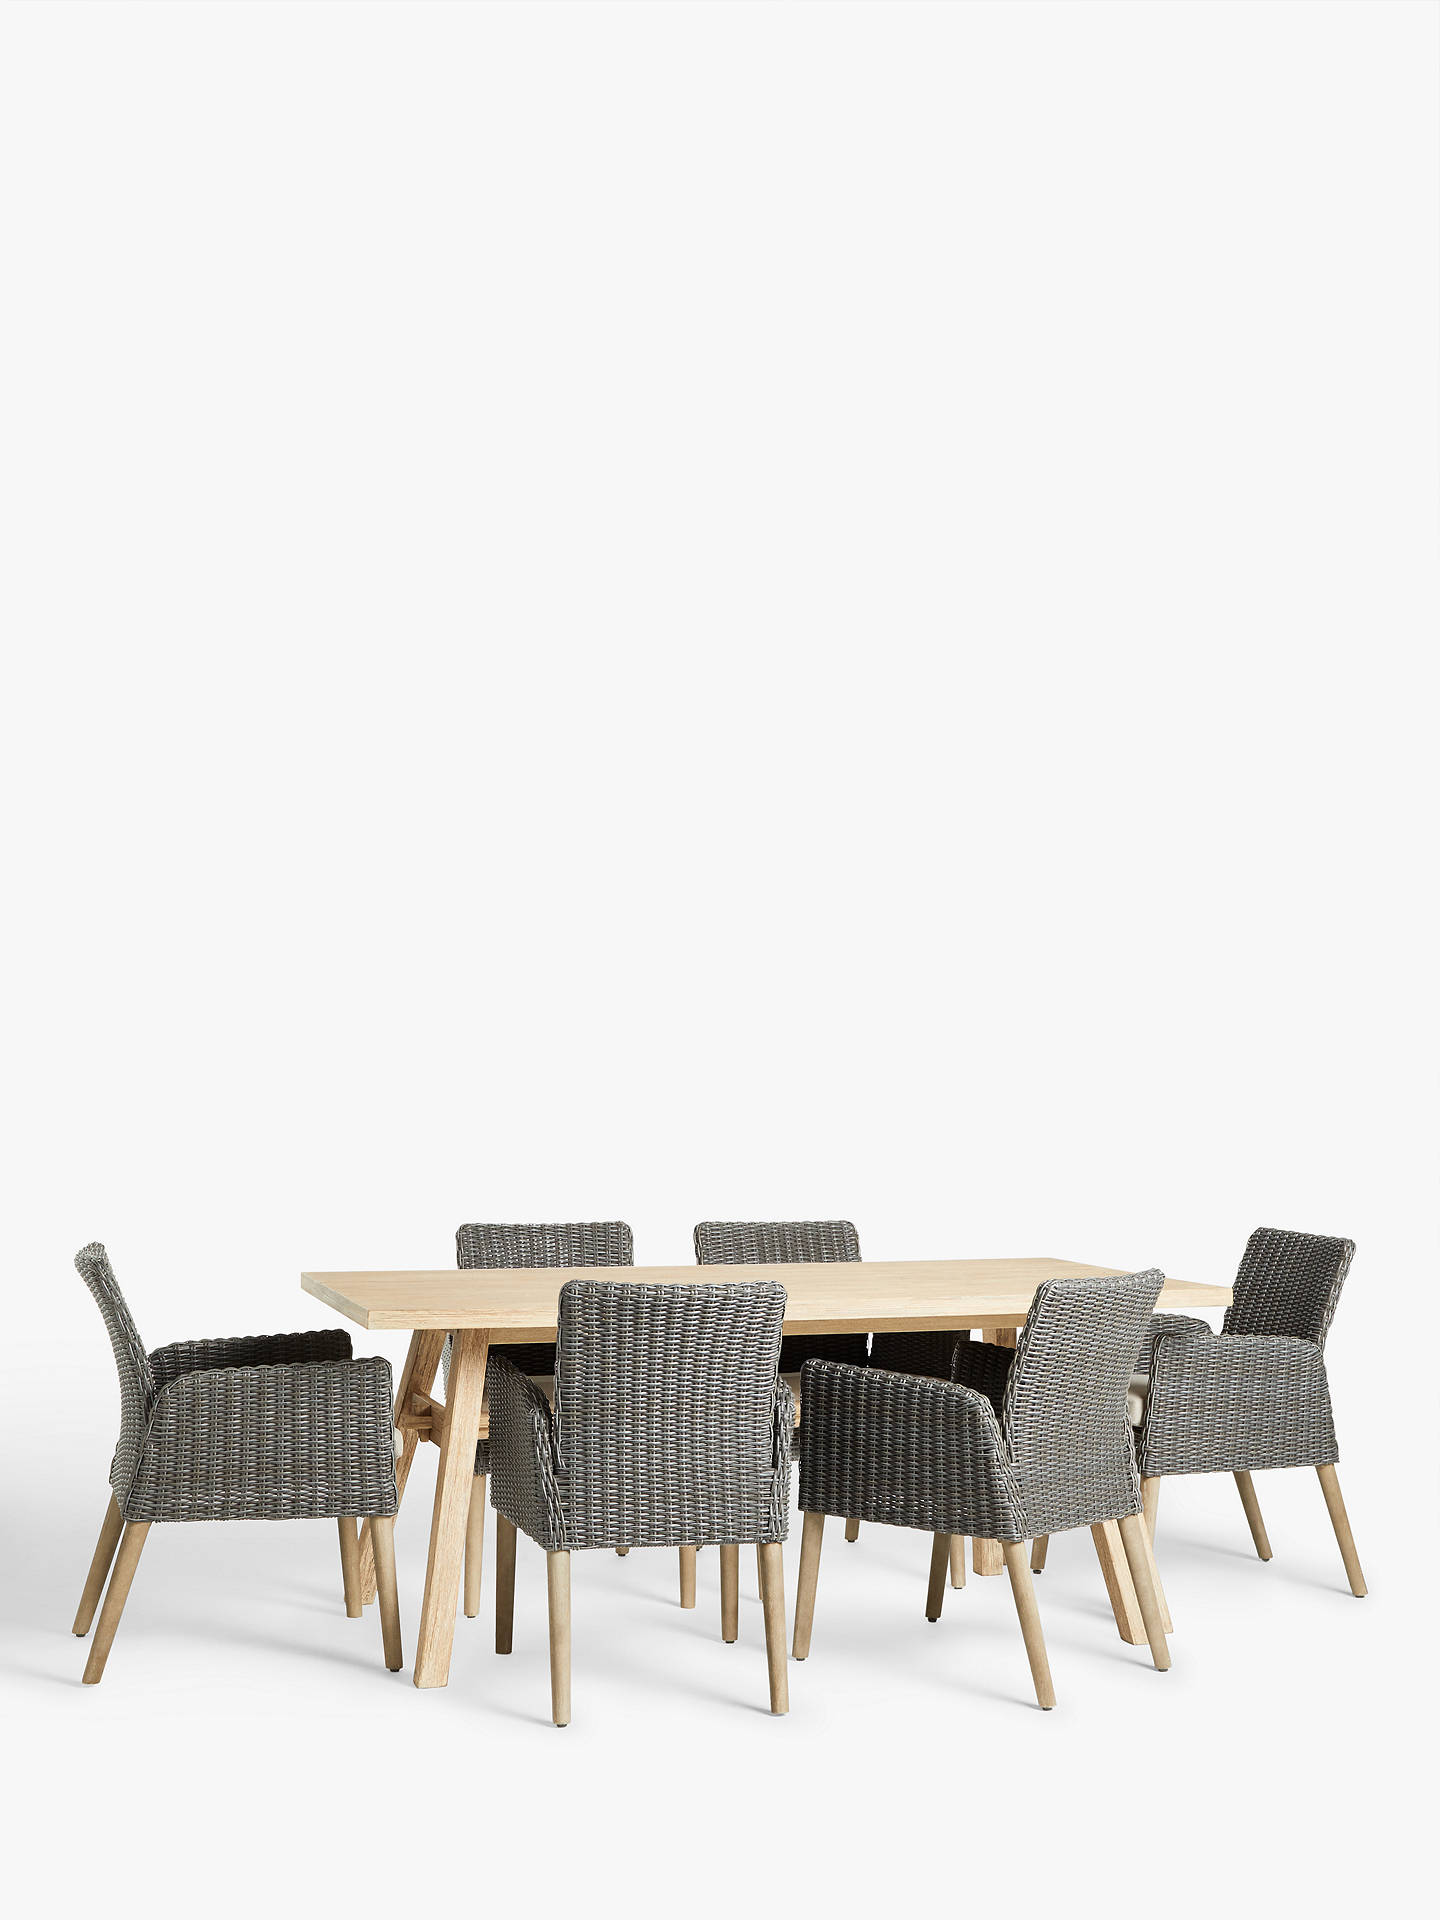 BuyJohn Lewis & Partners Eden Outdoor Dining Chairs, FSC-Certified  (Eucalyptus), ... - John Lewis & Partners Eden Outdoor Dining Chairs, FSC-Certified